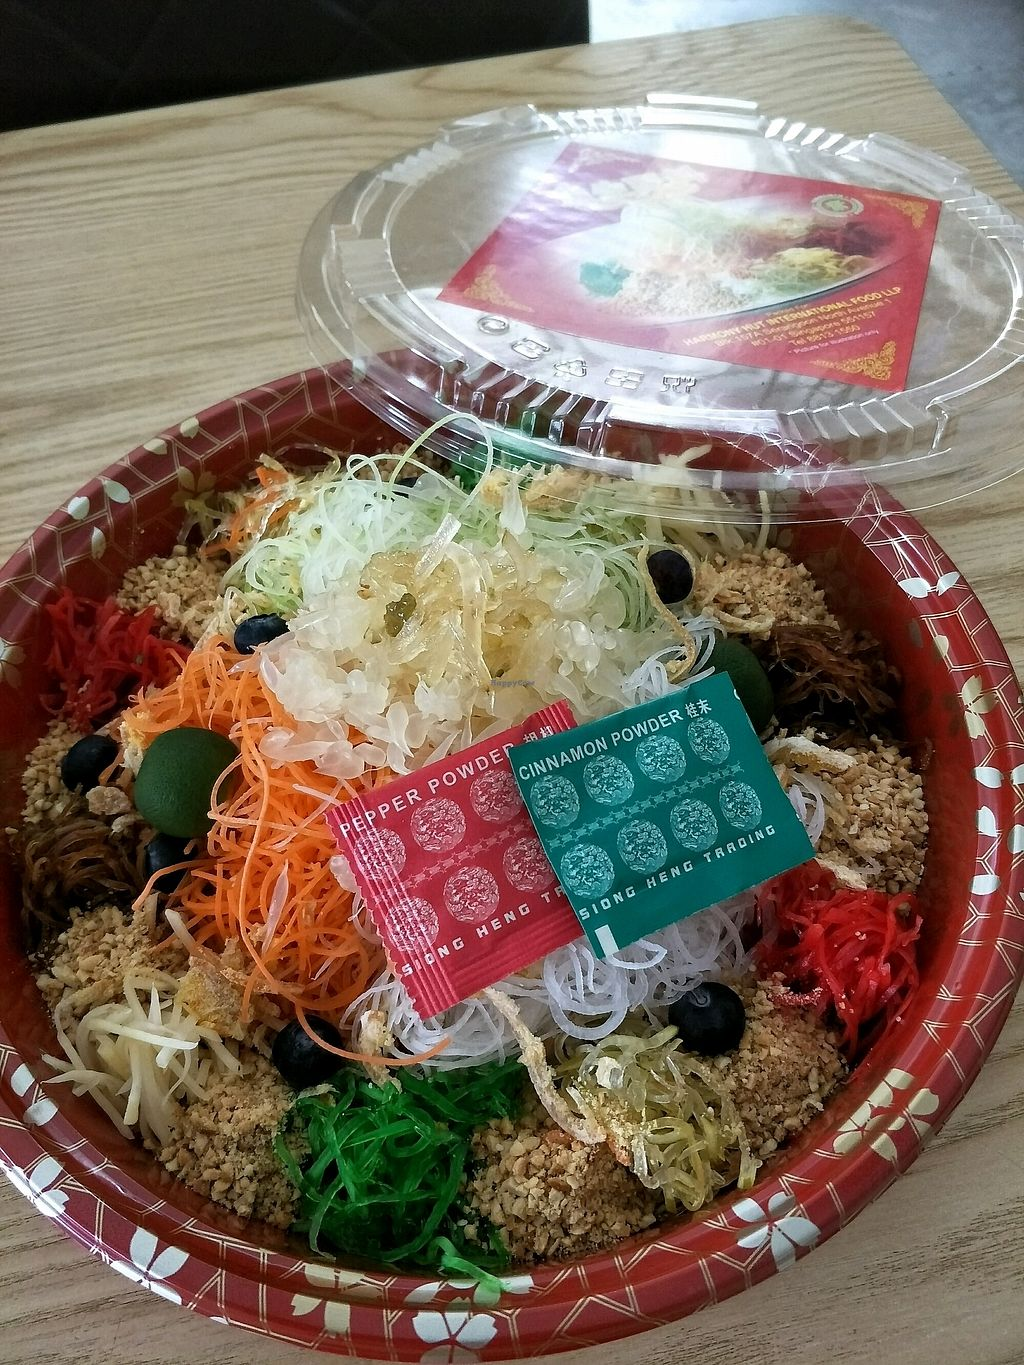 """Photo of Harmony Hut International Food  by <a href=""""/members/profile/MichelleNg"""">MichelleNg</a> <br/>takeaway yusheng? <br/> February 17, 2018  - <a href='/contact/abuse/image/90230/360203'>Report</a>"""